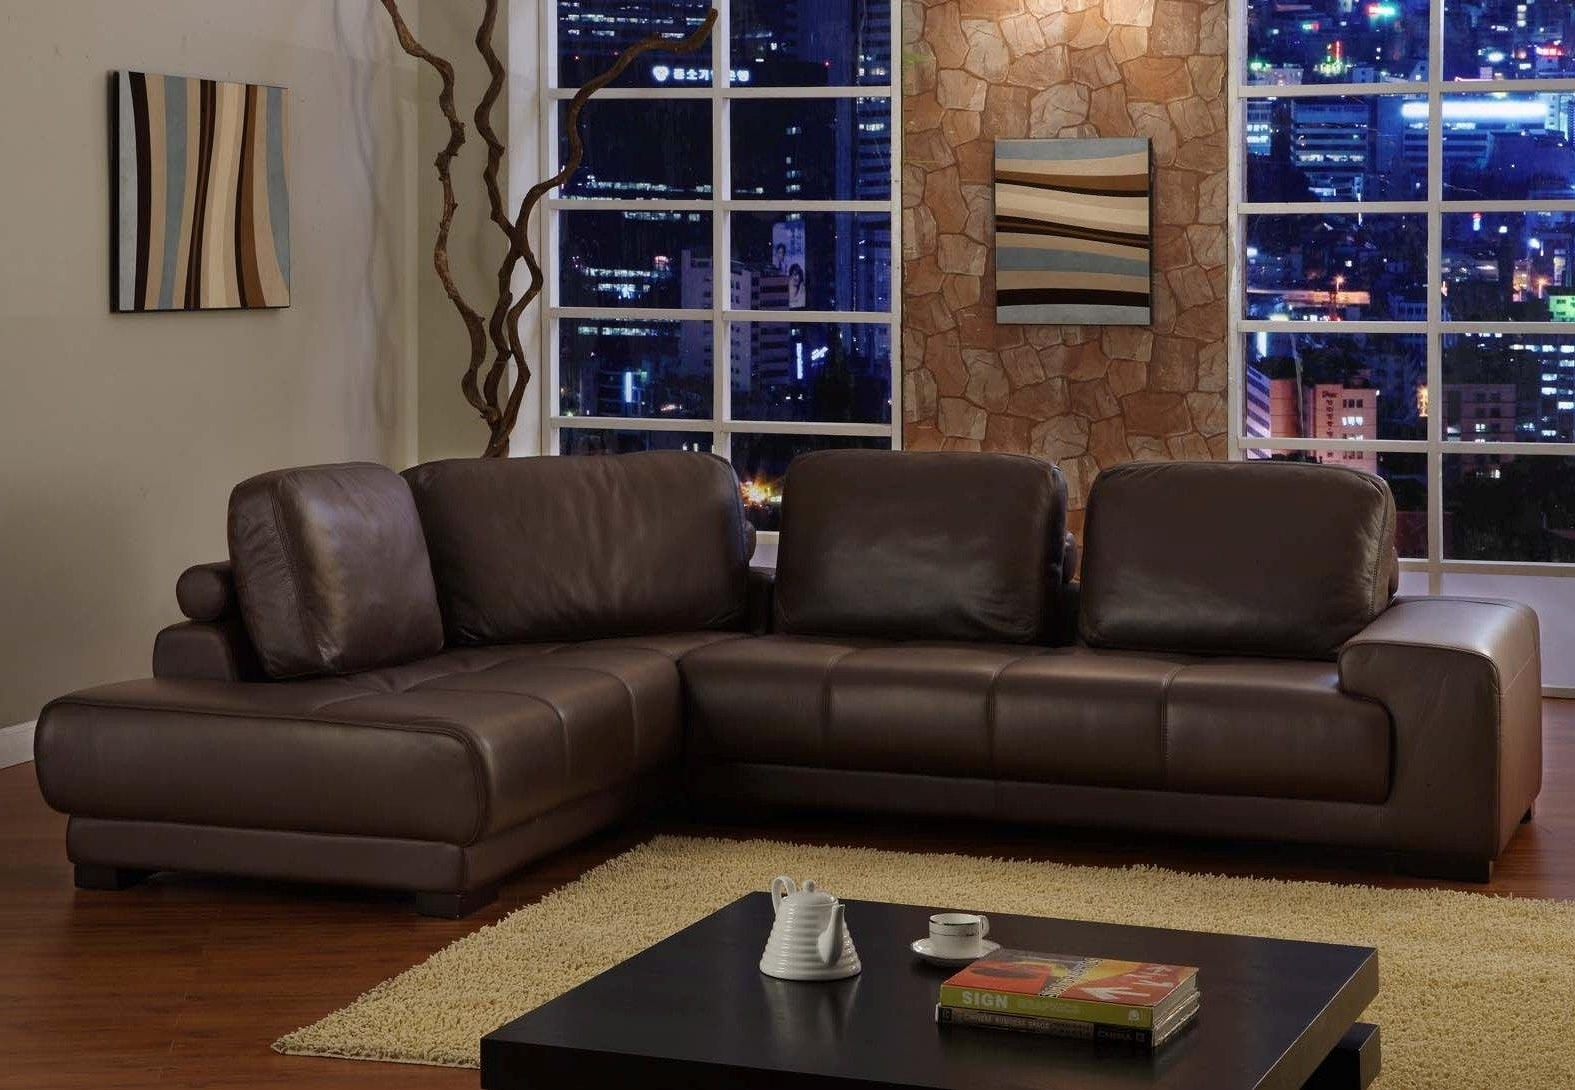 Well Liked Sectional Sofa Clearance: The Best Way To Get High Quality Sofa In With Regard To Clearance Sectional Sofas (View 14 of 15)